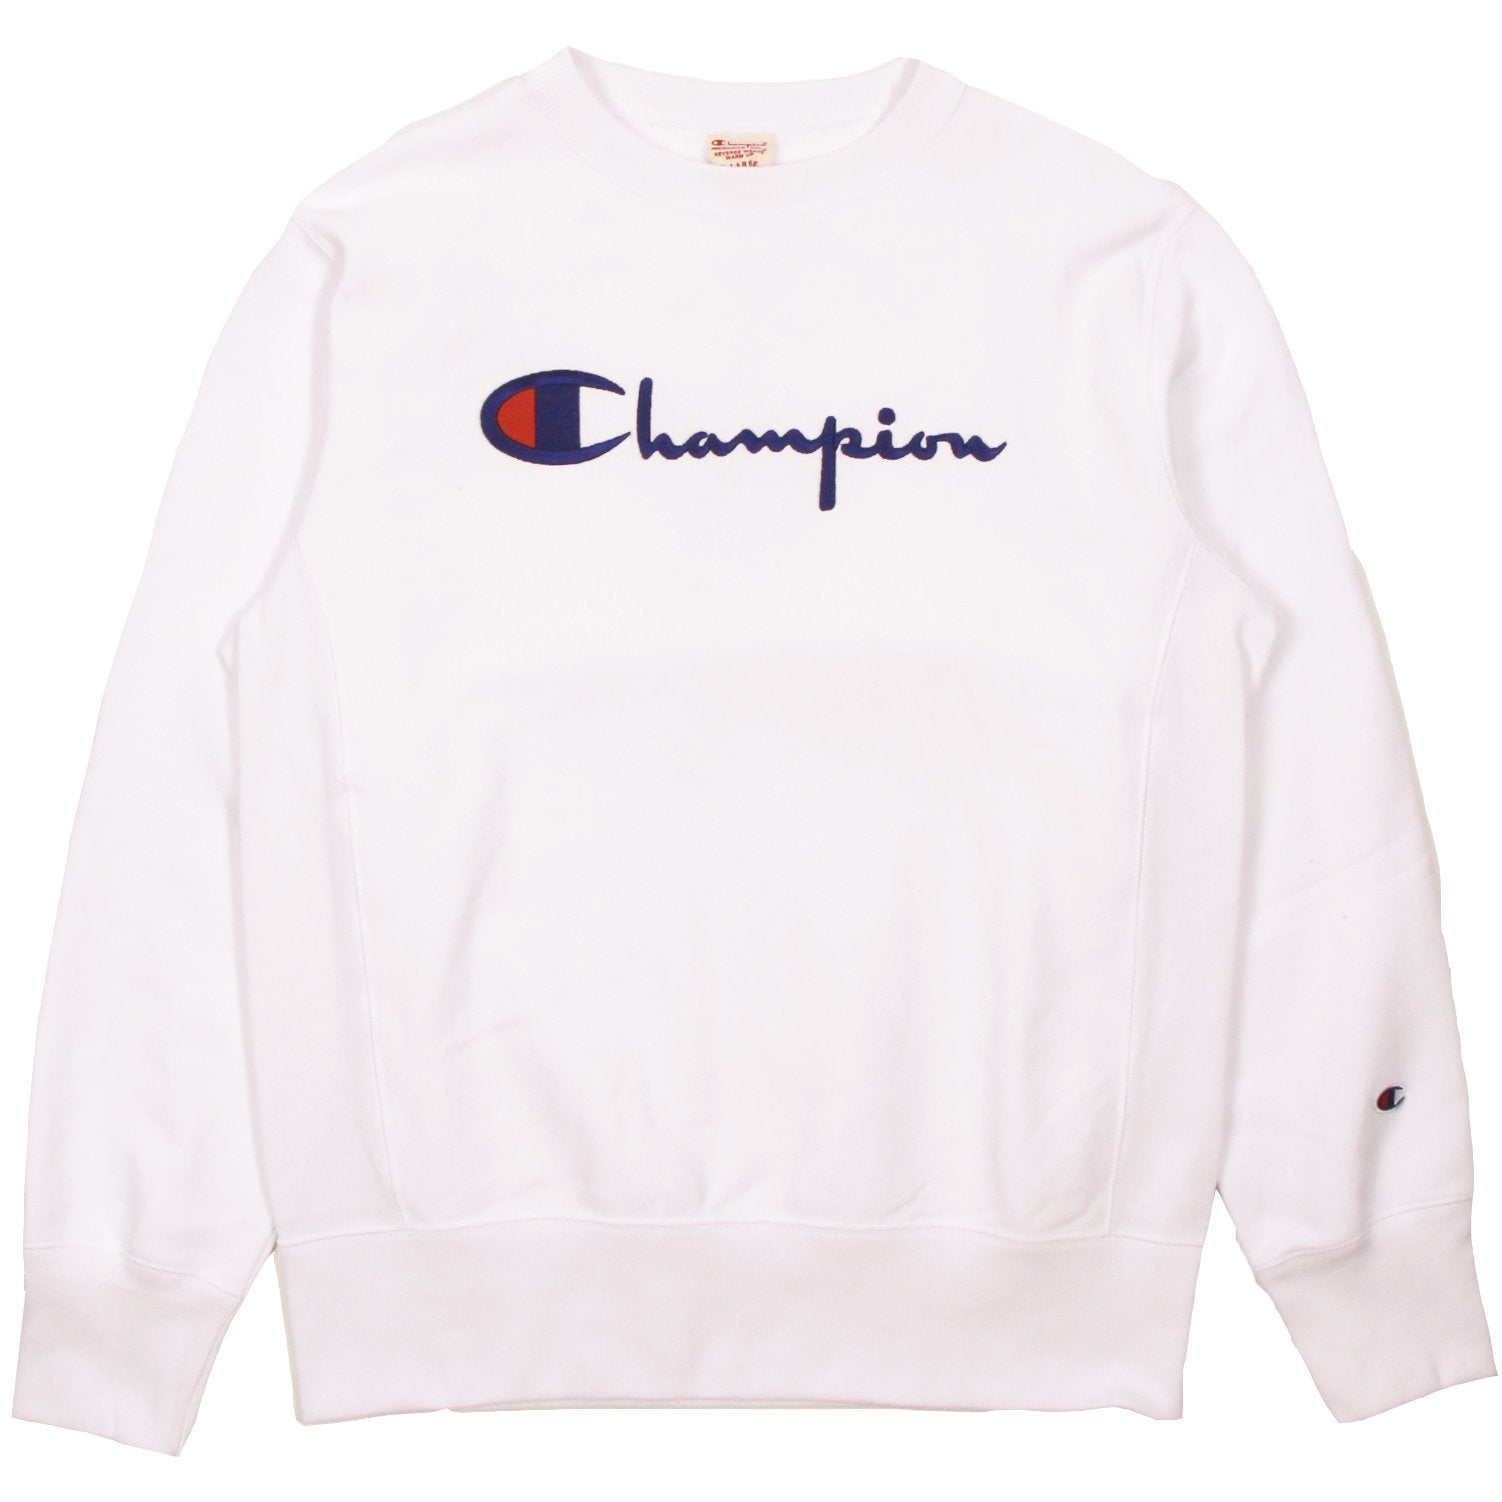 93e36423 Champion Europe Rev Weave Script Crew White | Pict Clothing Sydney